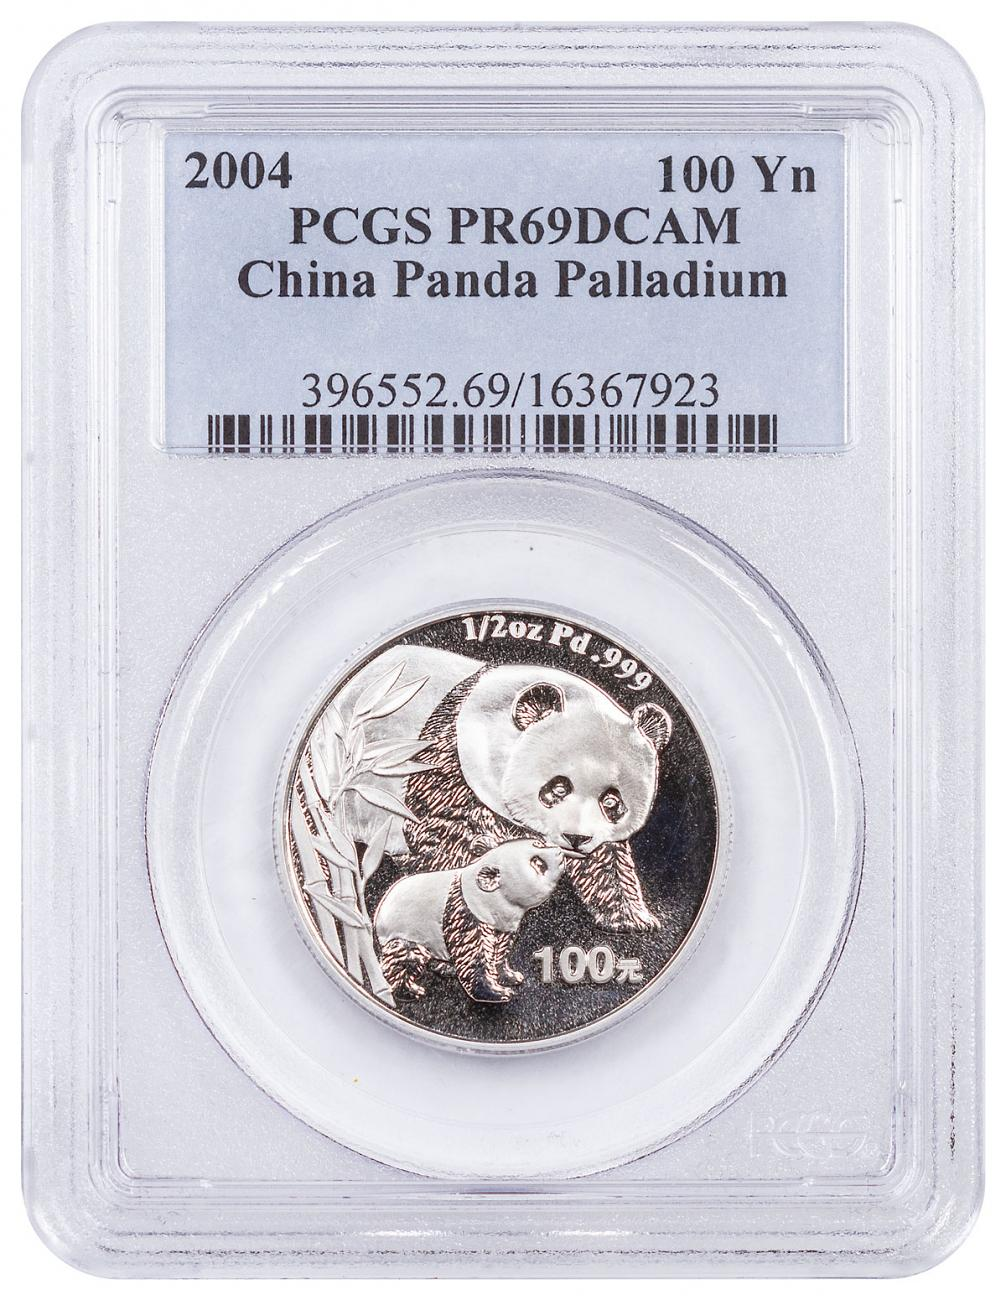 2004 100 Yuan 1/2 oz Proof Palladium China Panda PCGS PR69 DCAM